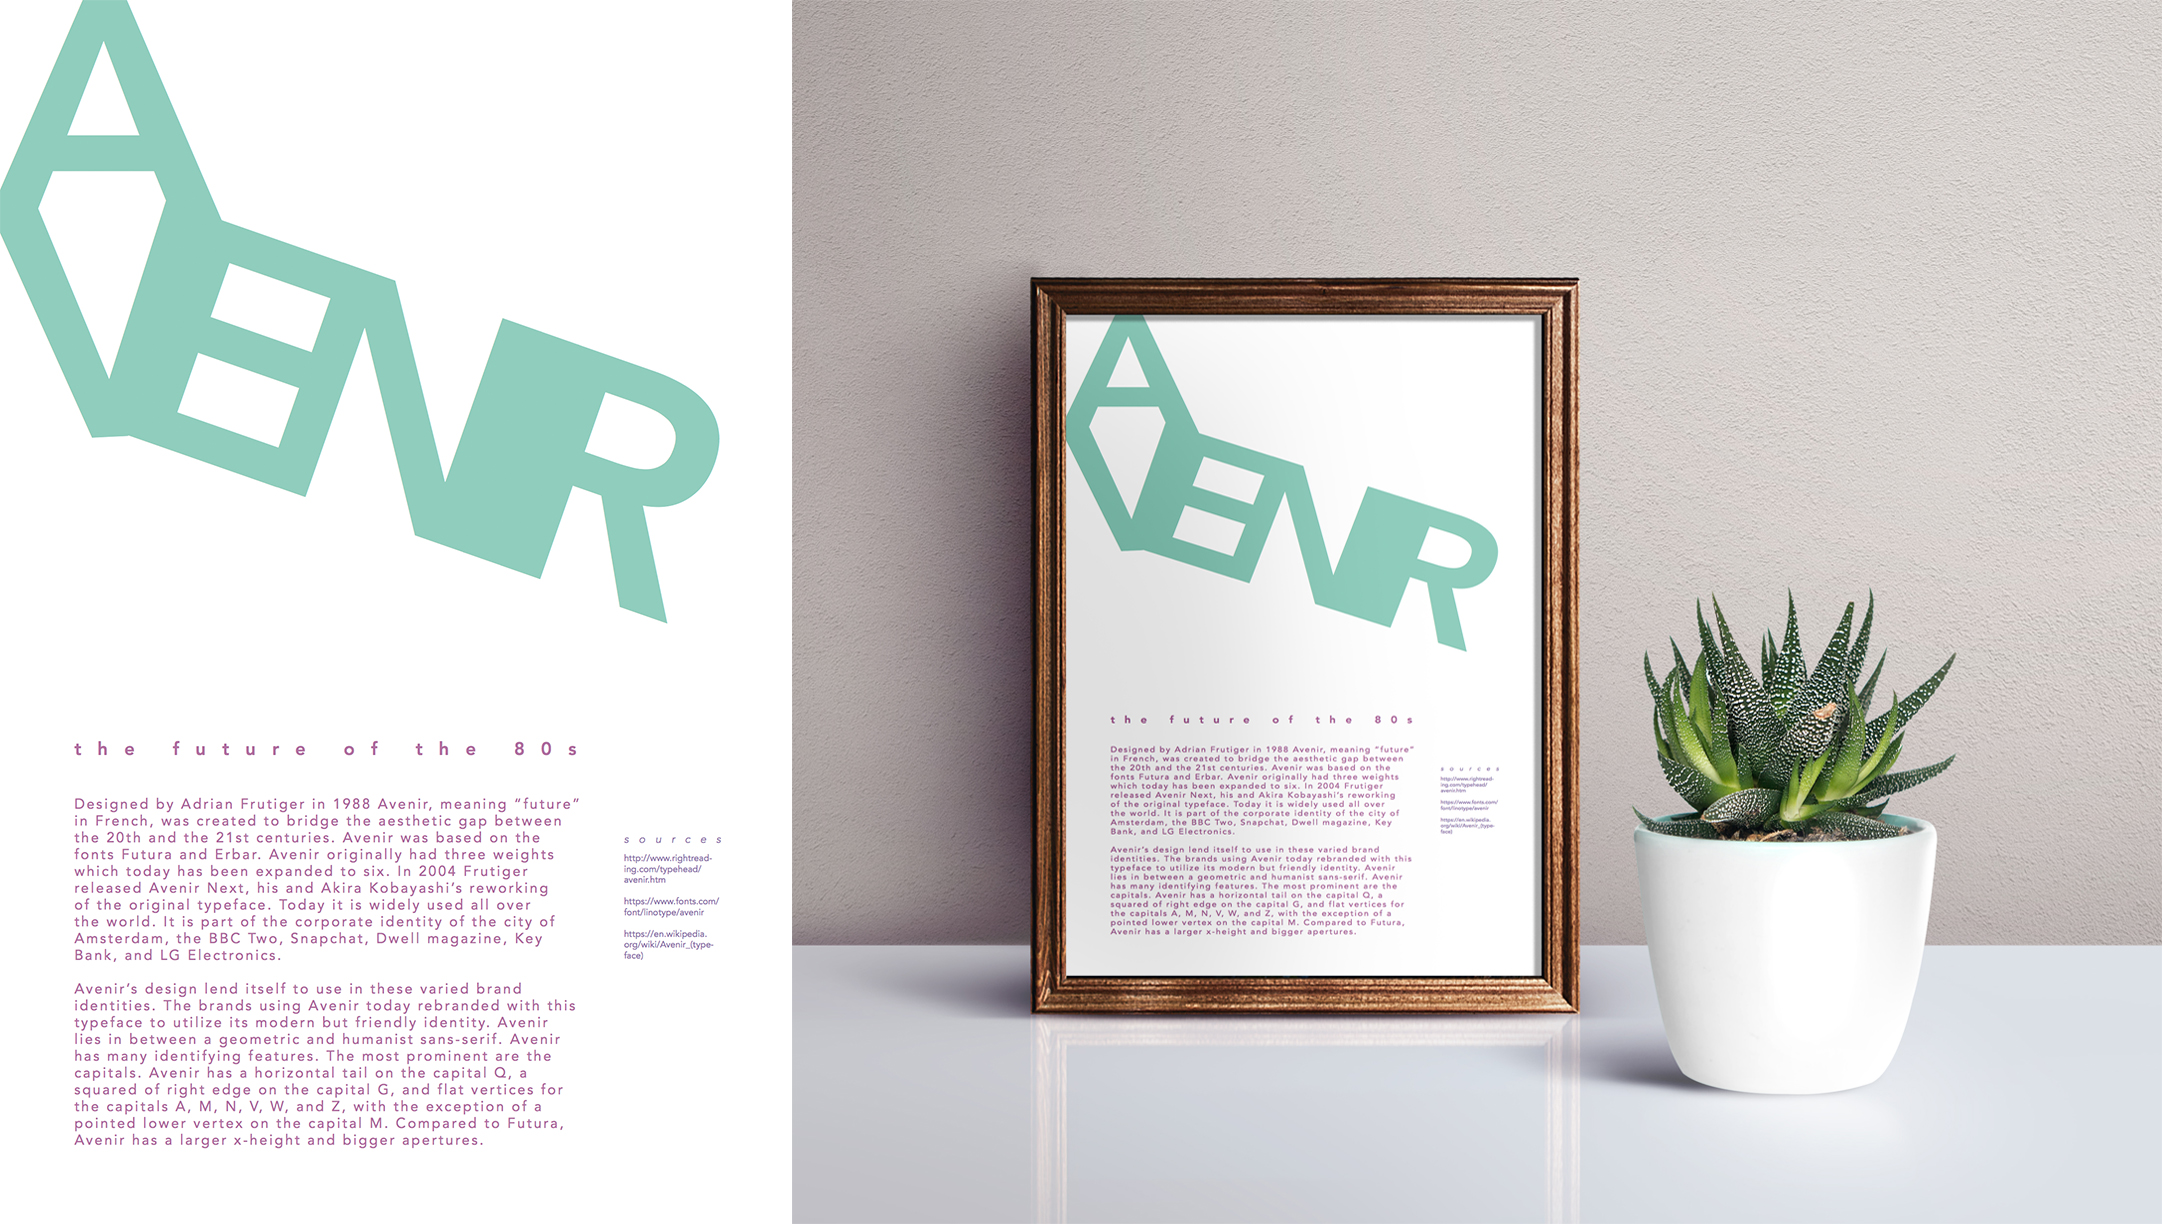 Poster explaining the history and identifying characteristics of the typeface Avenir.